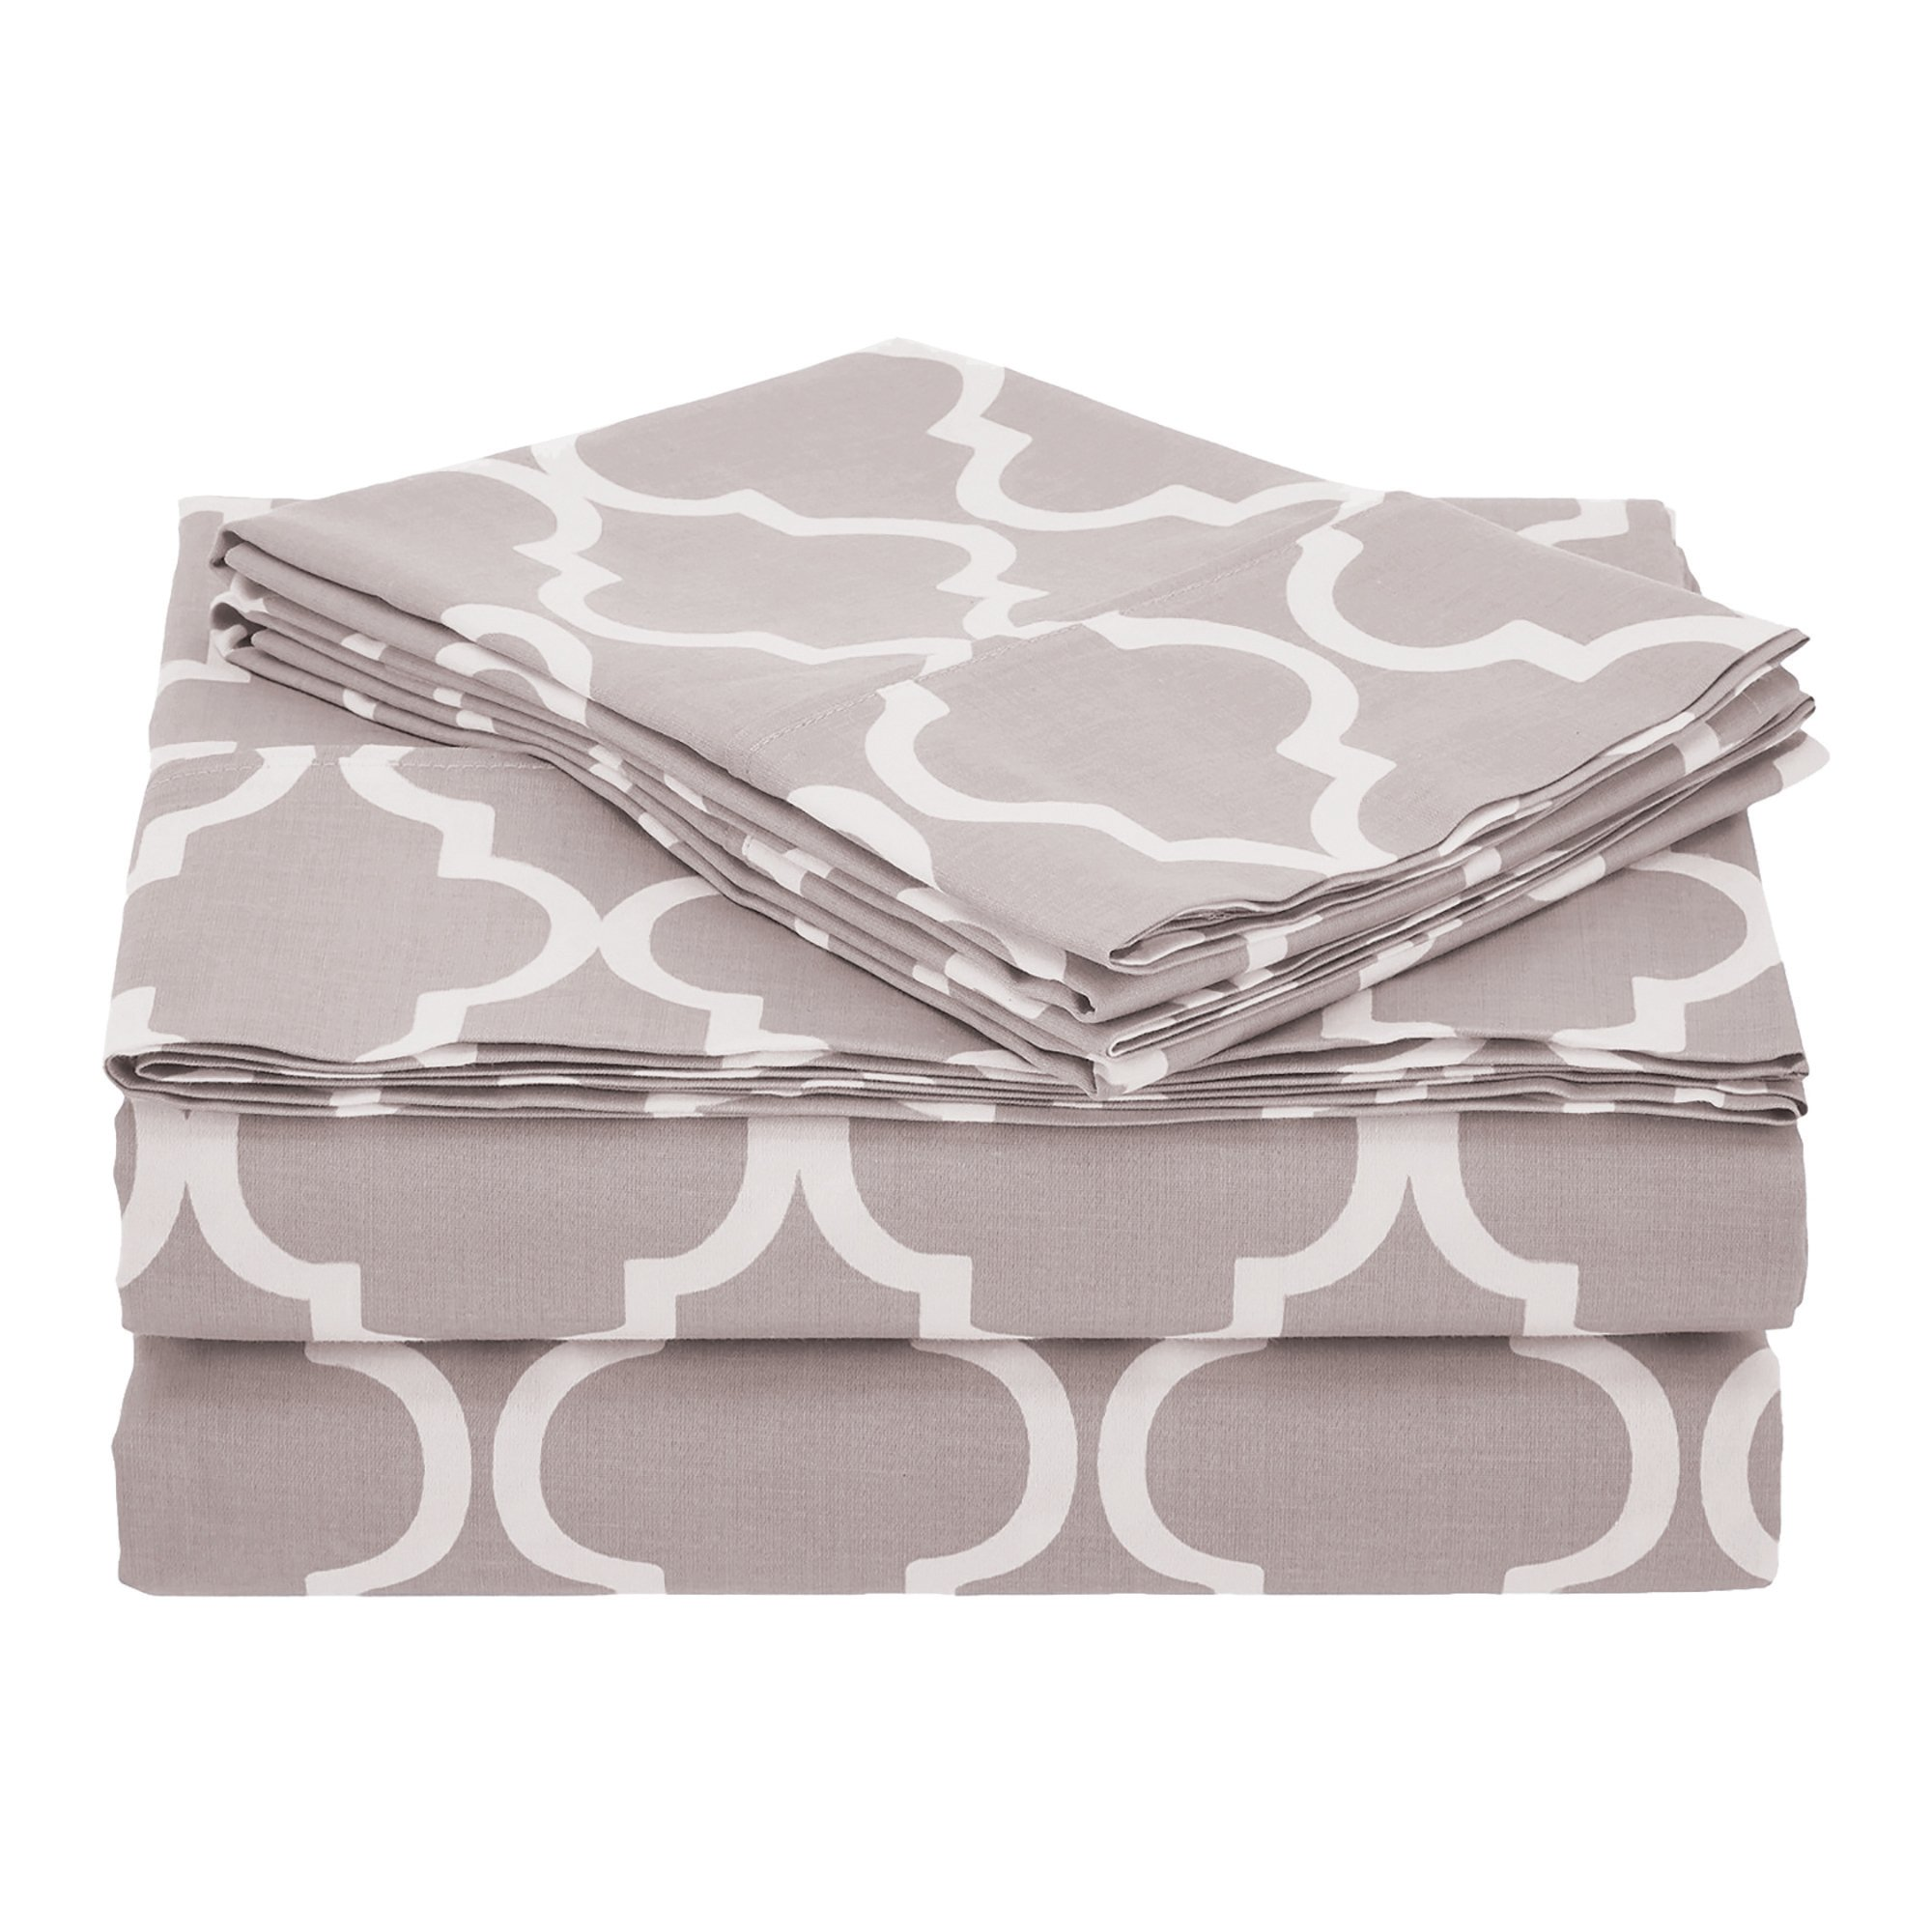 Superior 100% Cotton Trellis Geometric Bedding, 3 Piece Sheet Set, Soft and Breathable Cotton Sheets, 300 Thread Count with Deep Fitting Pockets - Twin, Grey